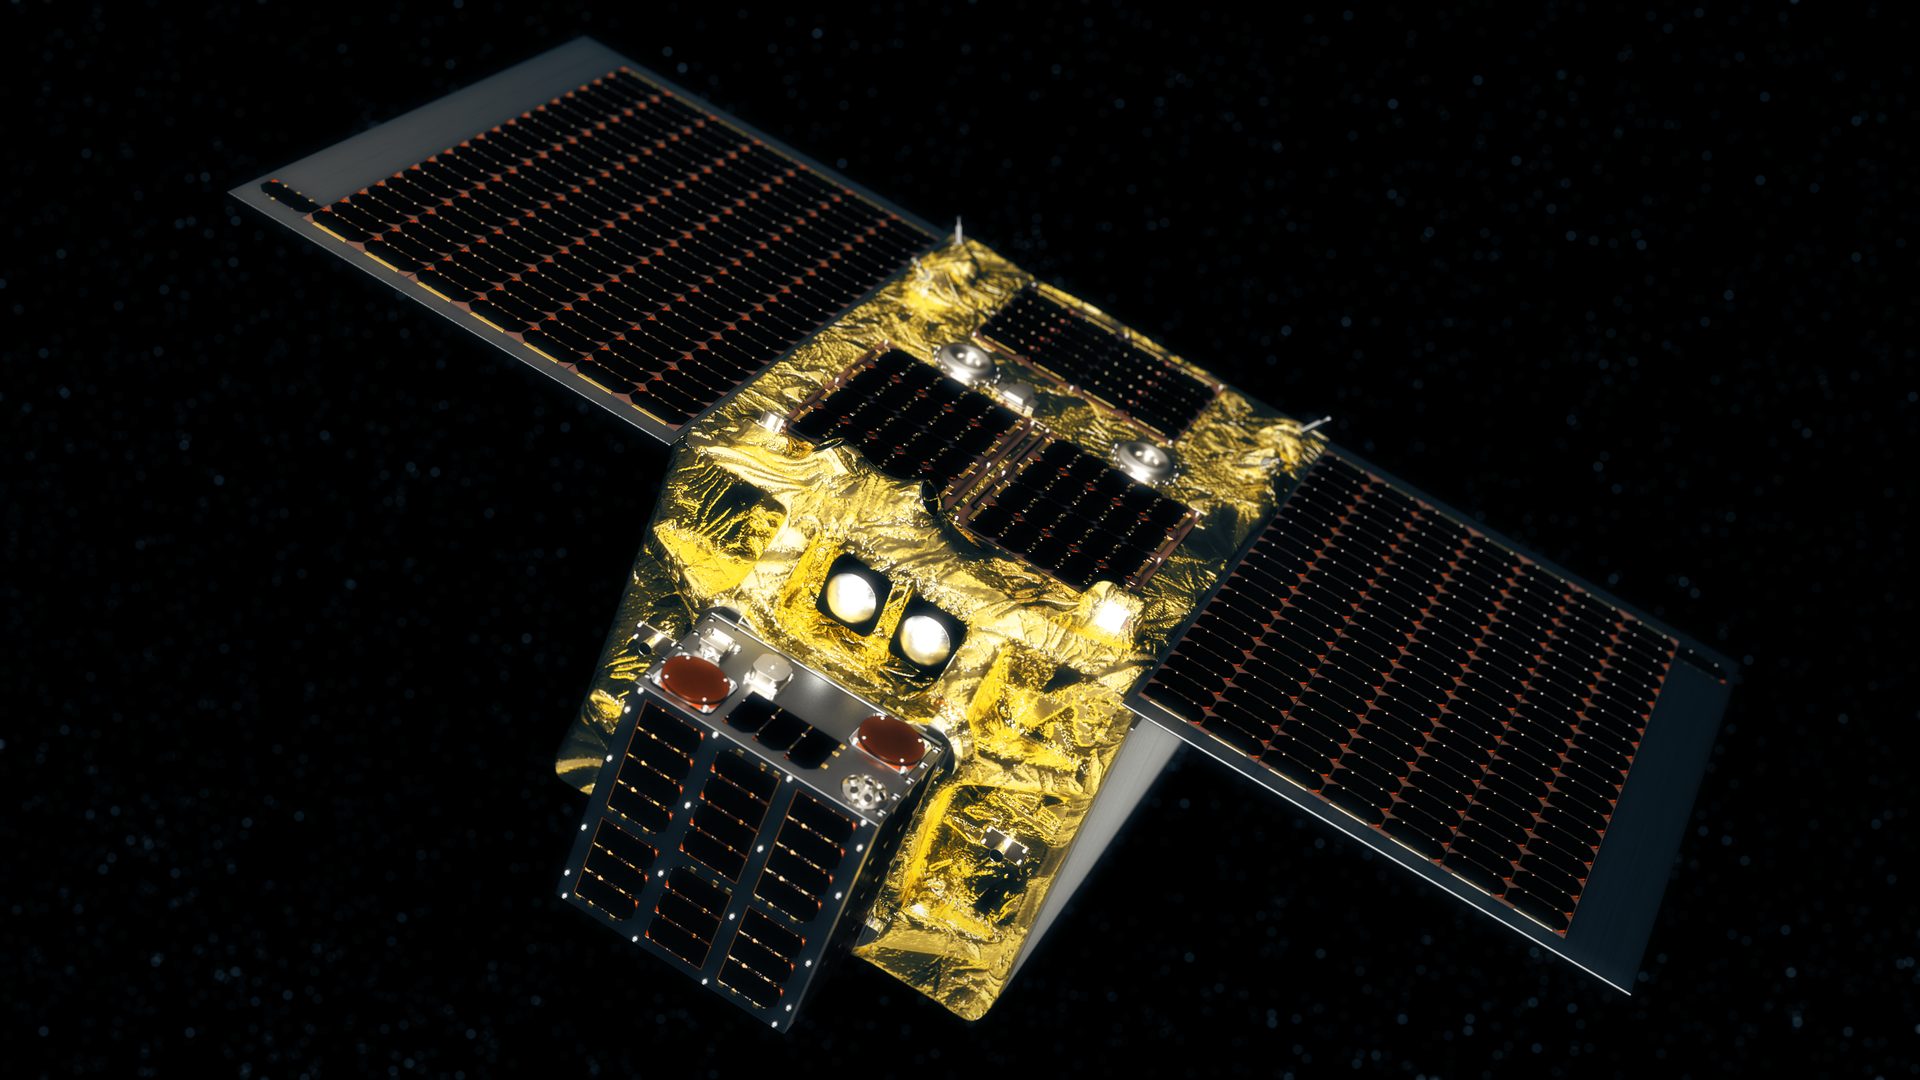 Chaser spacecraft to remove retired satellites